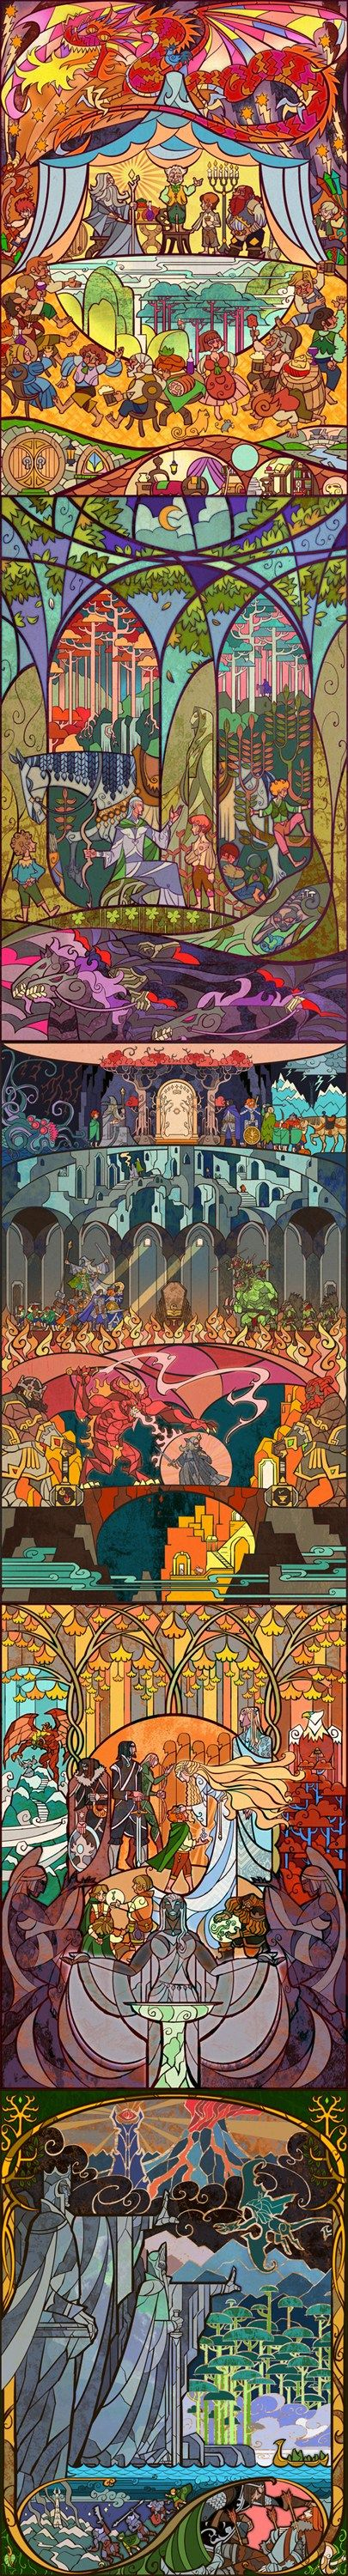 Stained glass Lord of the Rings